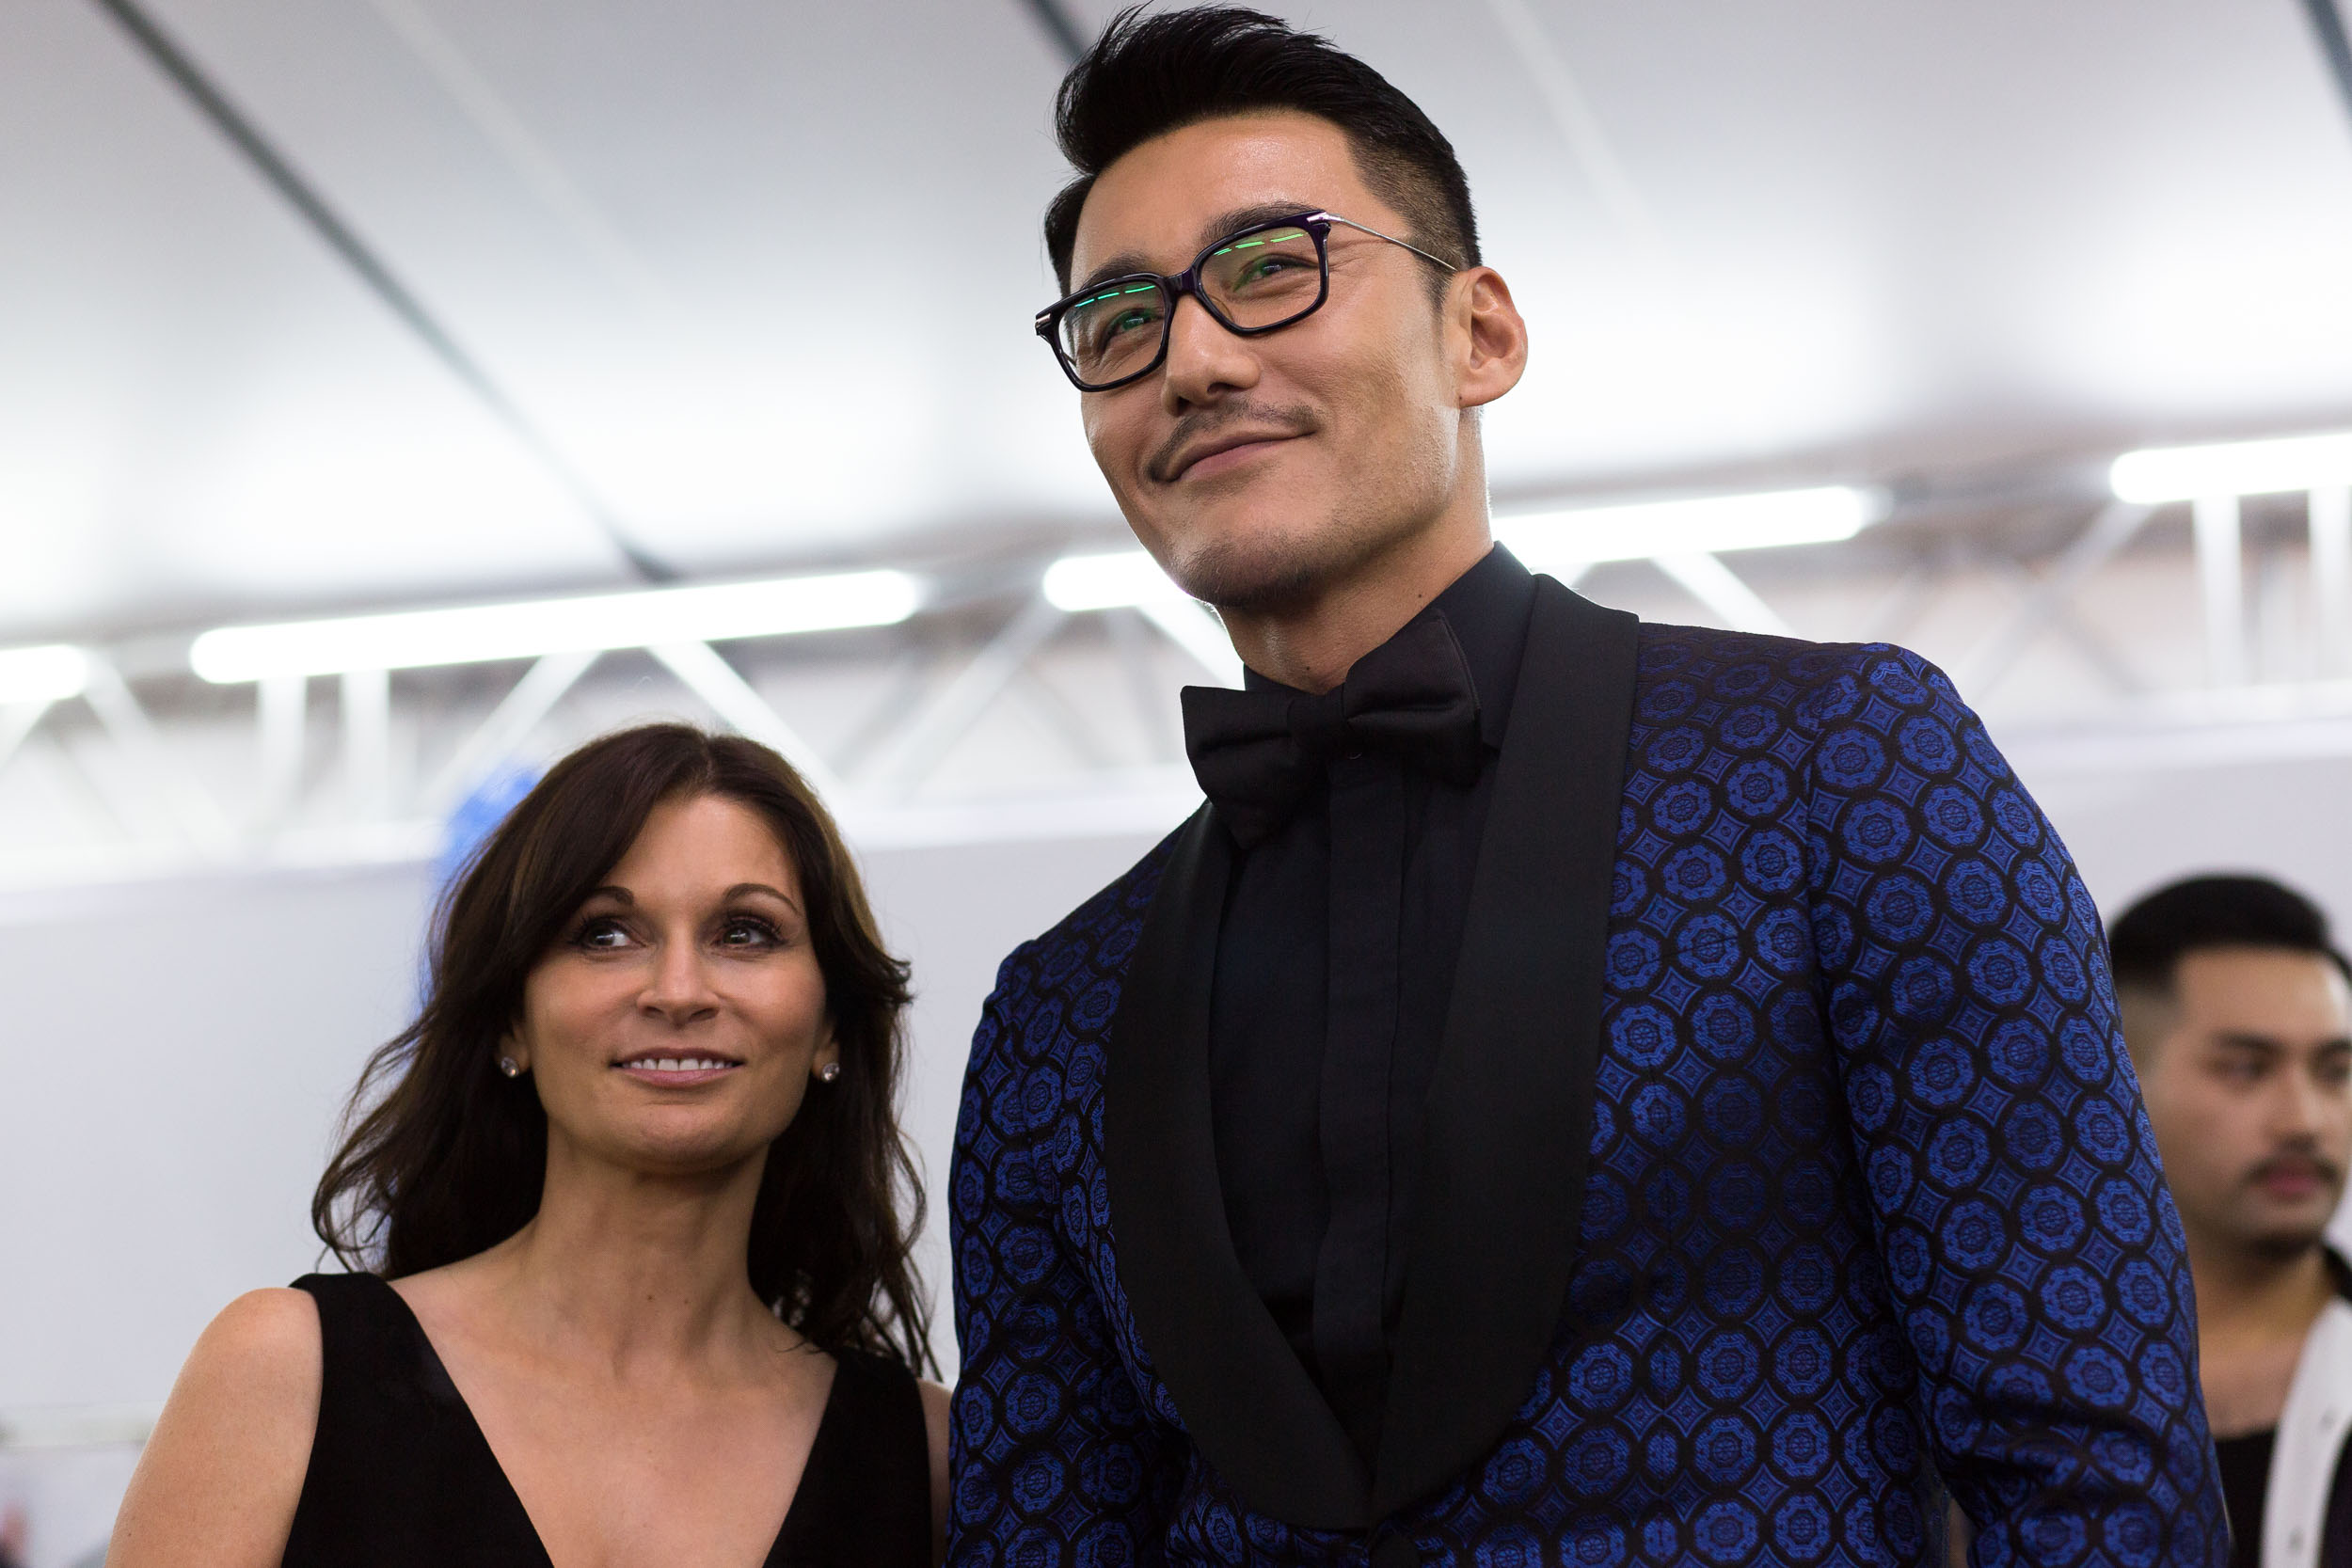 La Perla designer Julia Haart (left) and Chinese actor Hu Bing (right) backstage before the show.